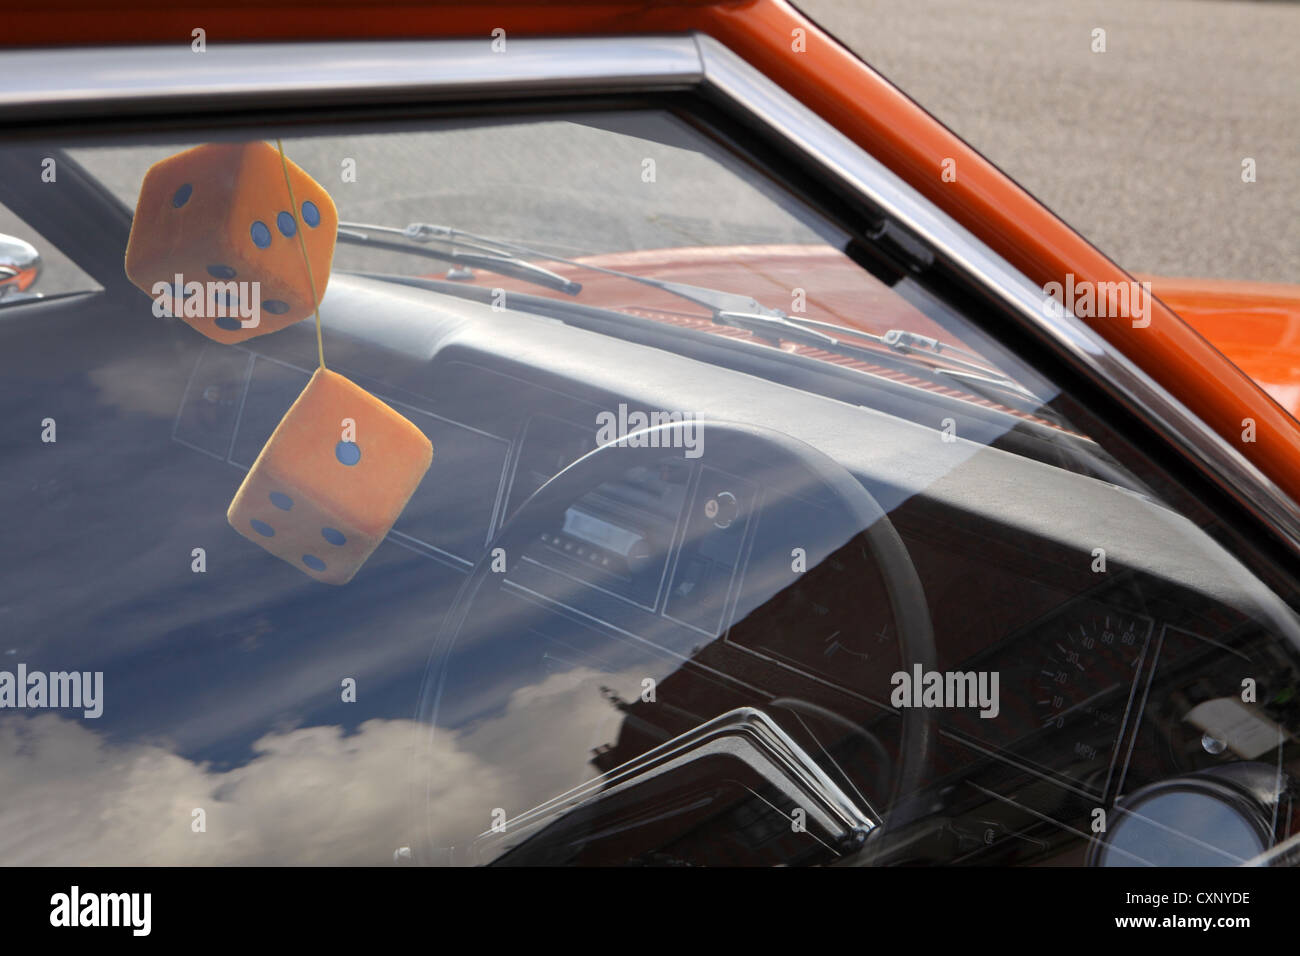 Pair Large Orange Fuzzy Furry Dice Hanging From Rear View Mirror